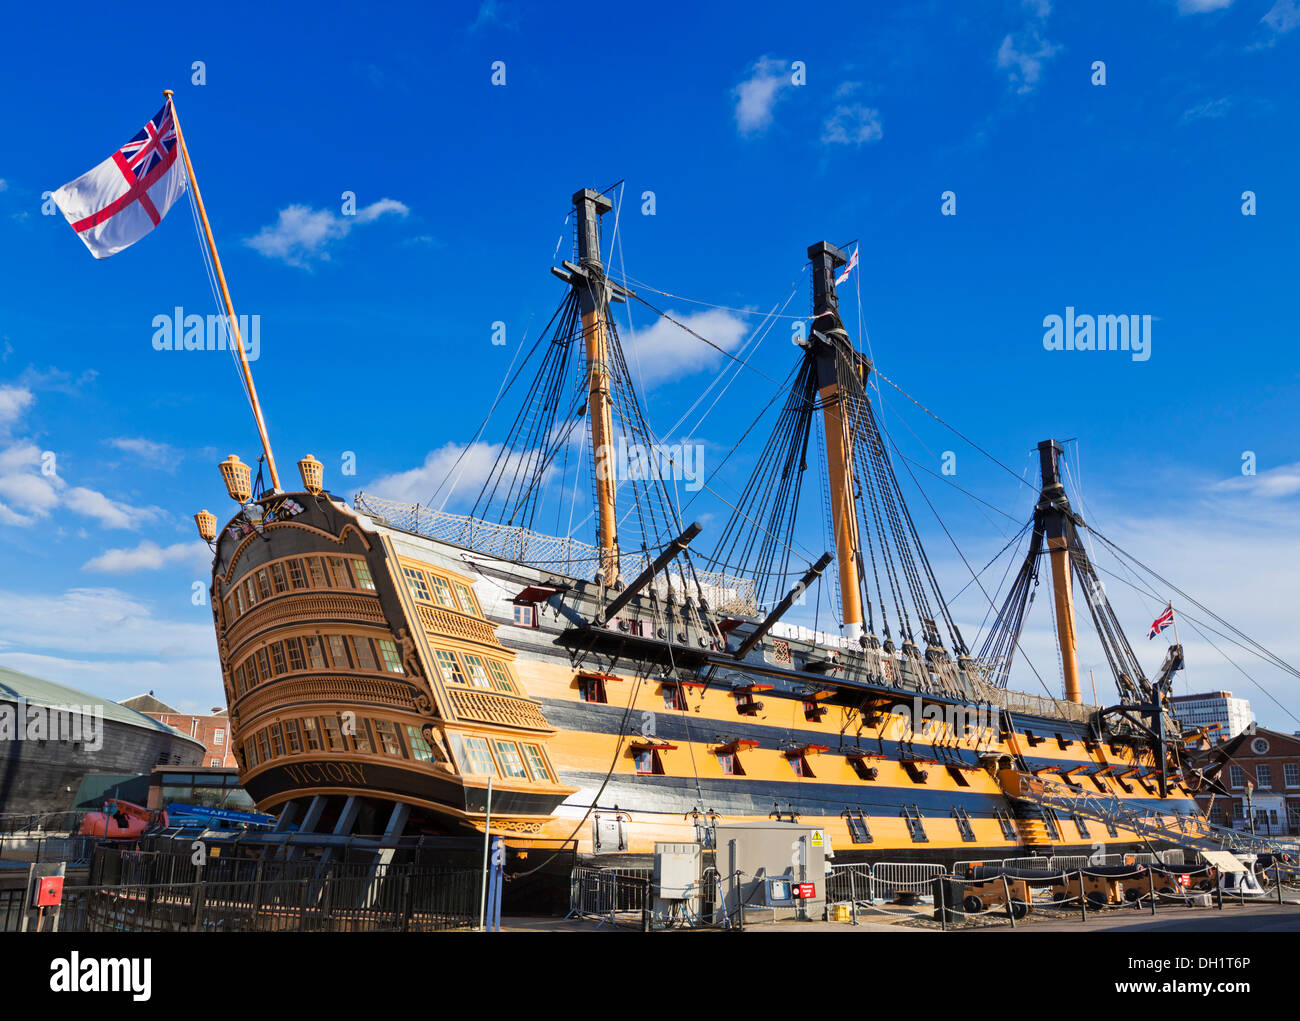 HMS Victory in the Portsmouth Historic Dockyard Portsmouth Hampshire England UK GB EU Europe - Stock Image